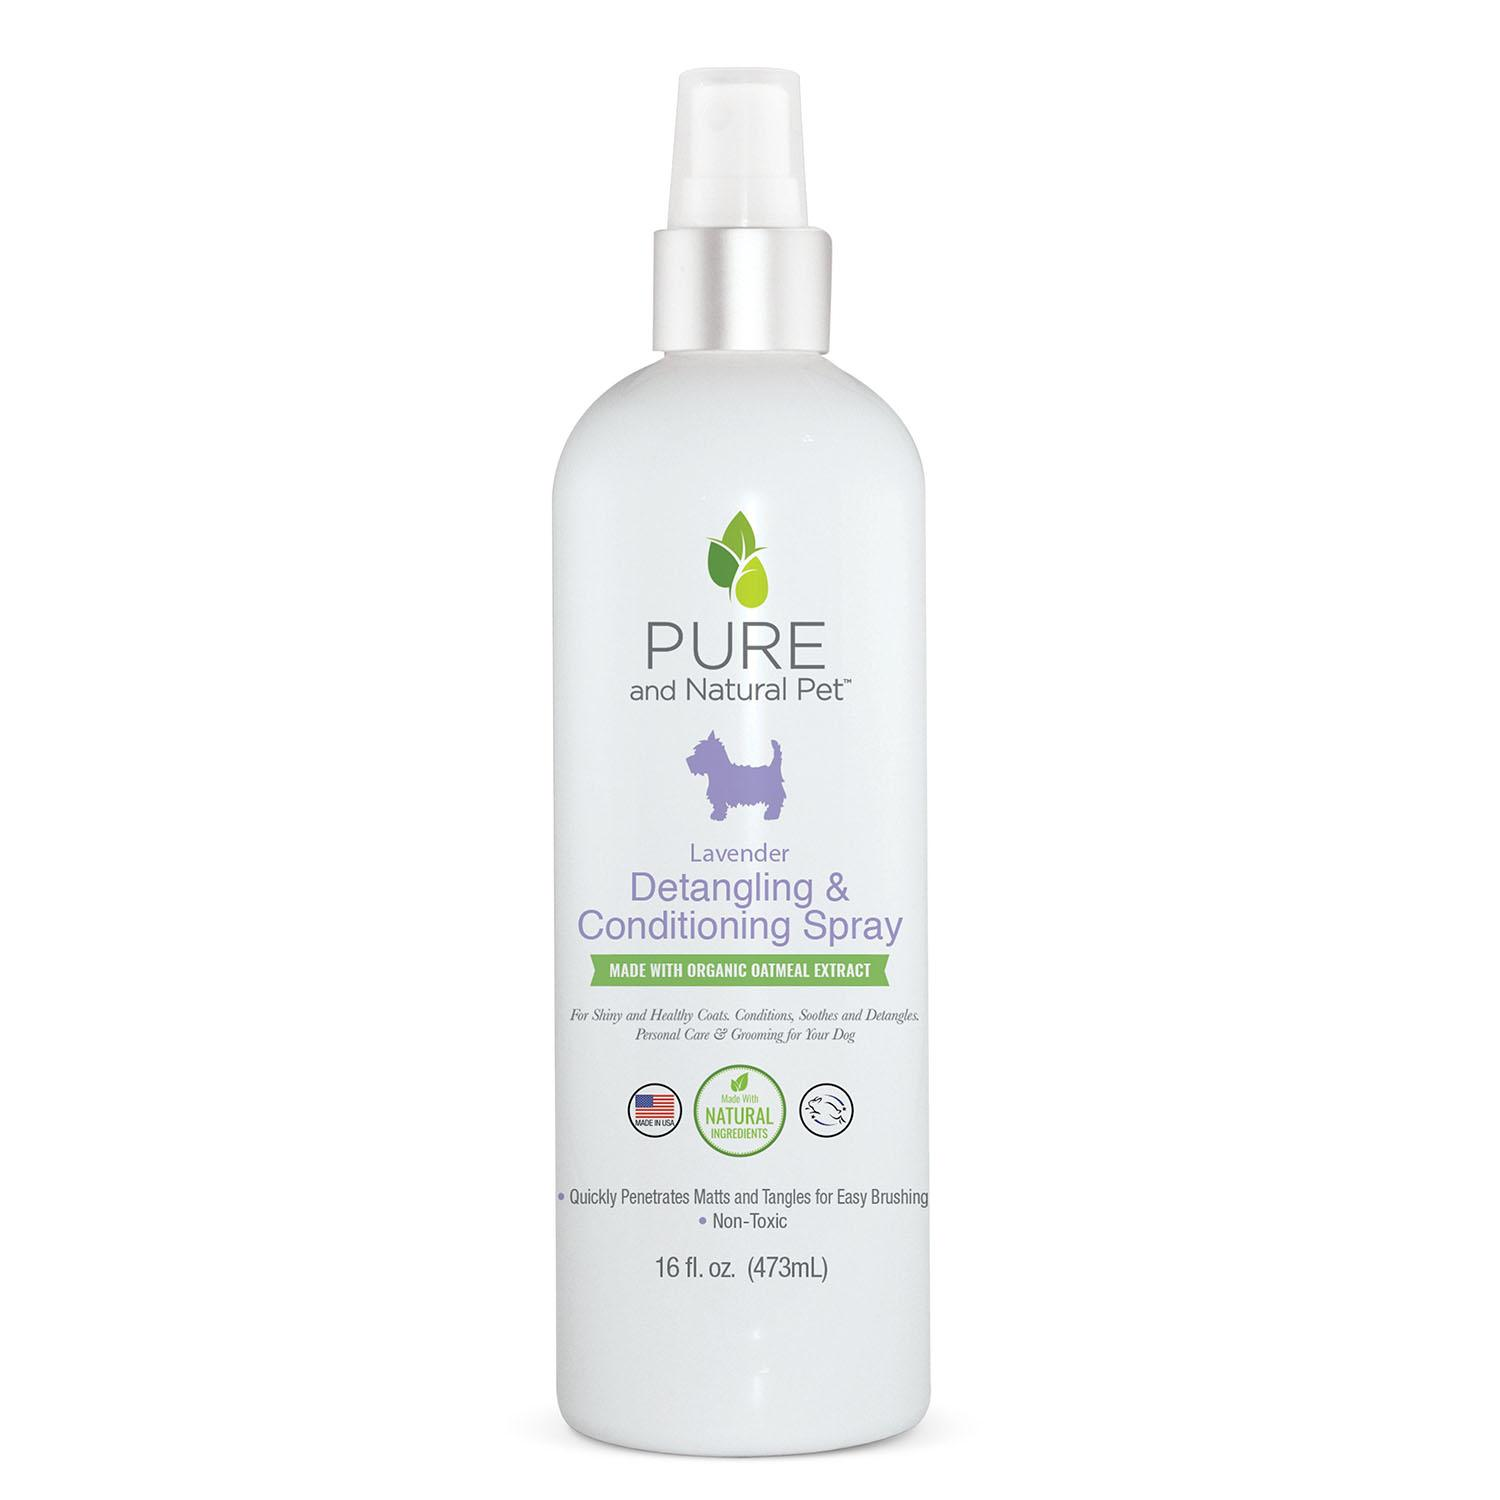 Pure and Natural Pet Lavender Detangling & Conditioning Spray for Dogs